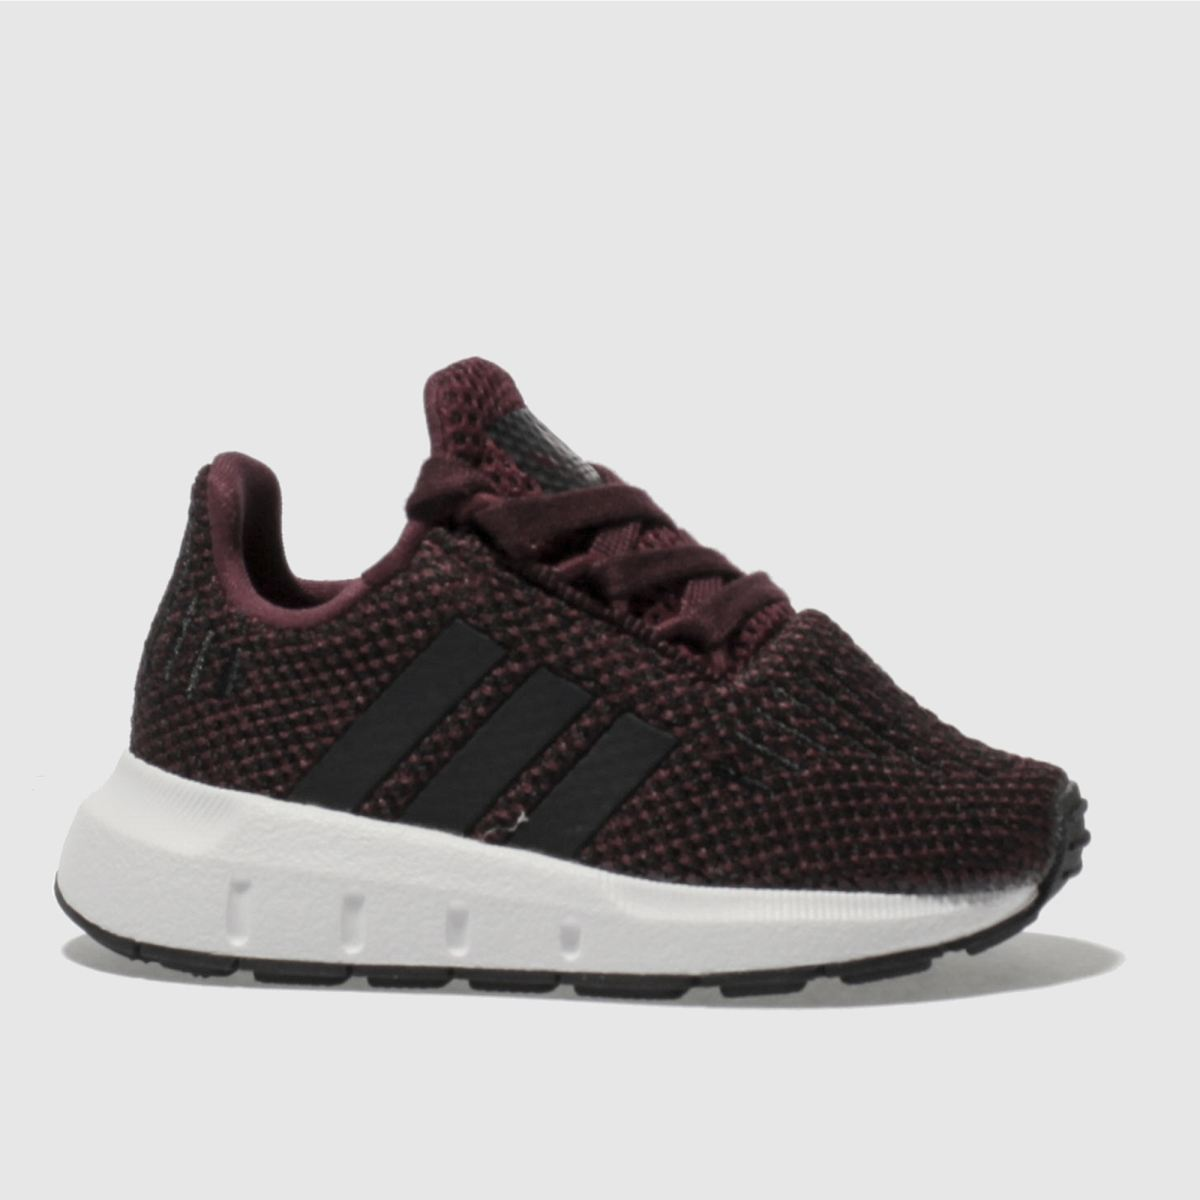 Adidas Burgundy Swift Run Unisex Toddler Toddler